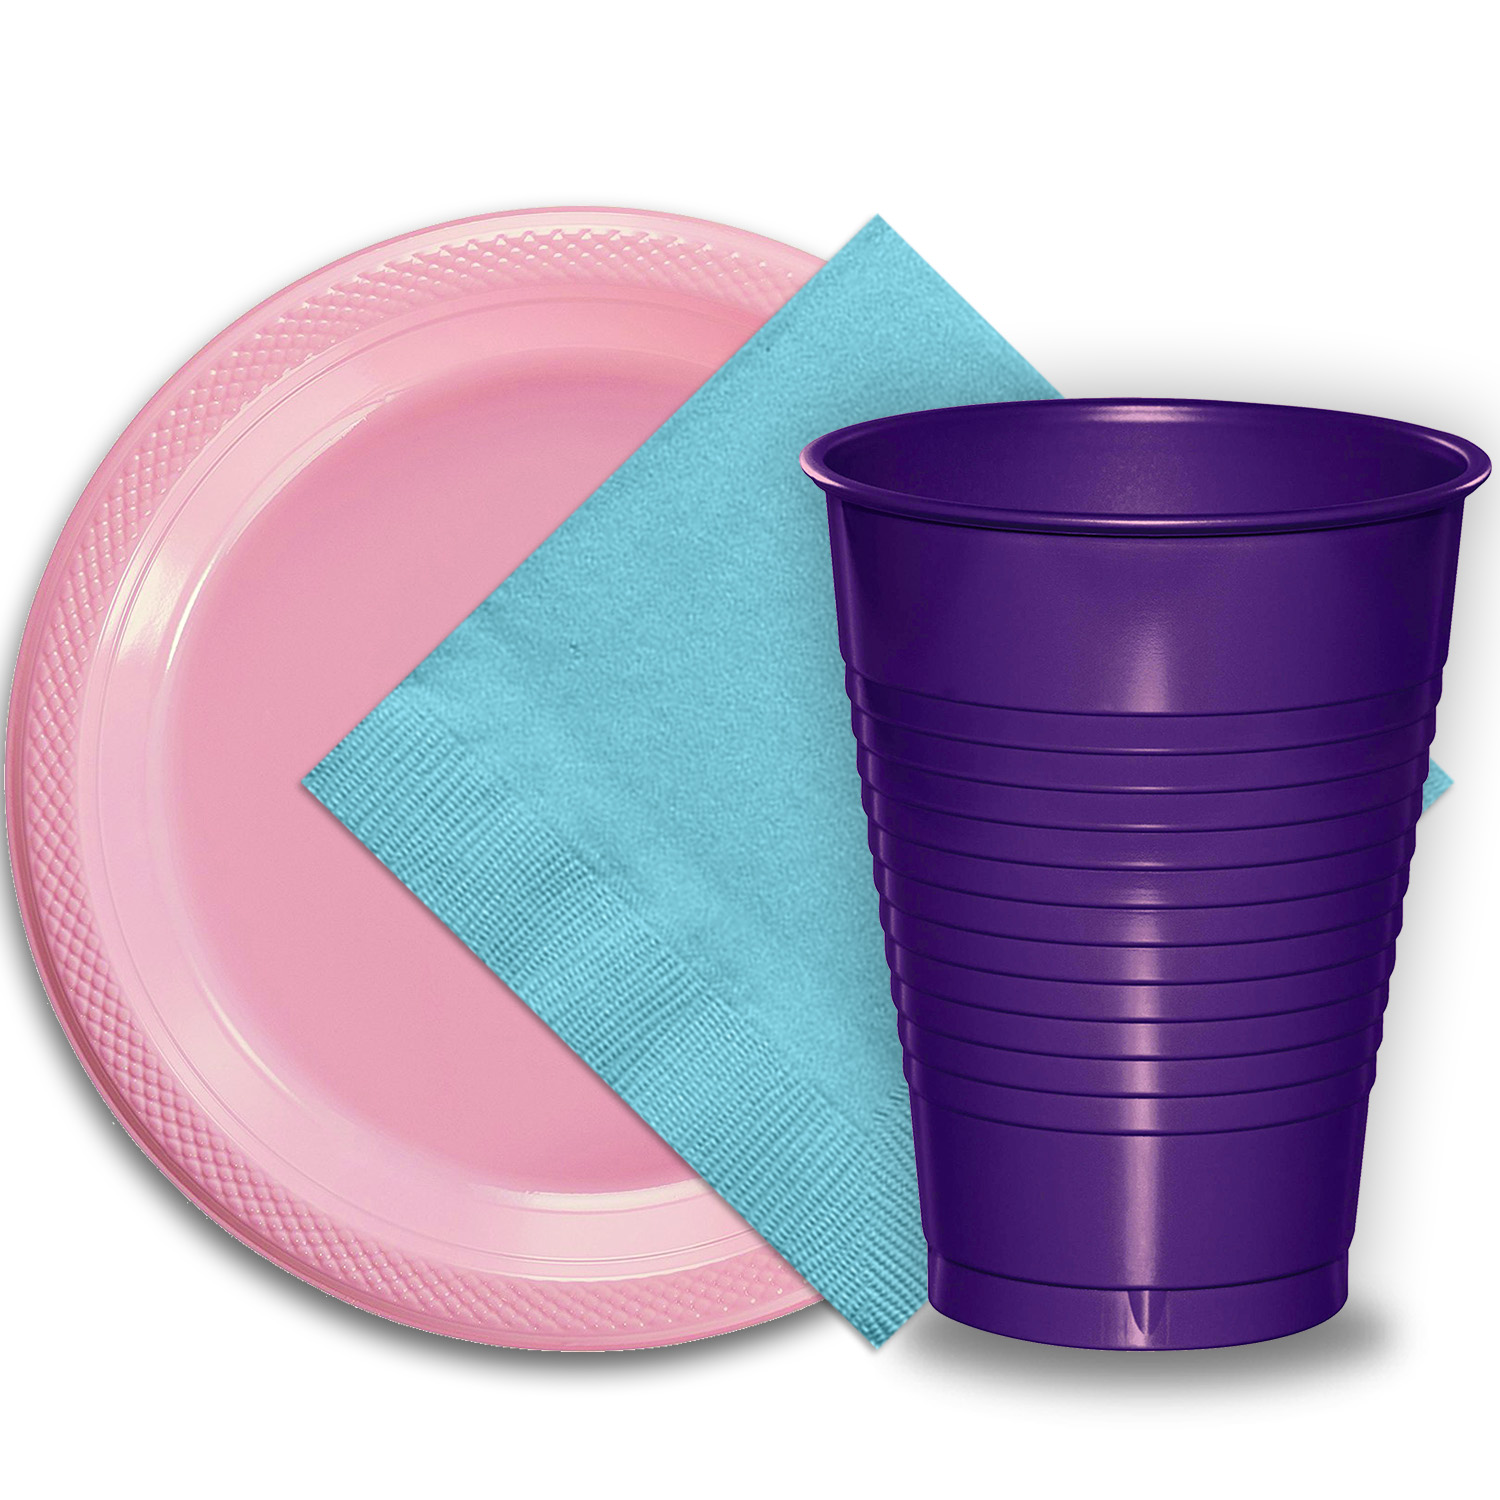 "50 Pink Plastic Plates (9""), 50 Purple Plastic Cups (12 oz.), and 50 Light Blue Paper Napkins, Dazzelling Colored Disposable Party Supplies Tableware Set for Fifty Guests."